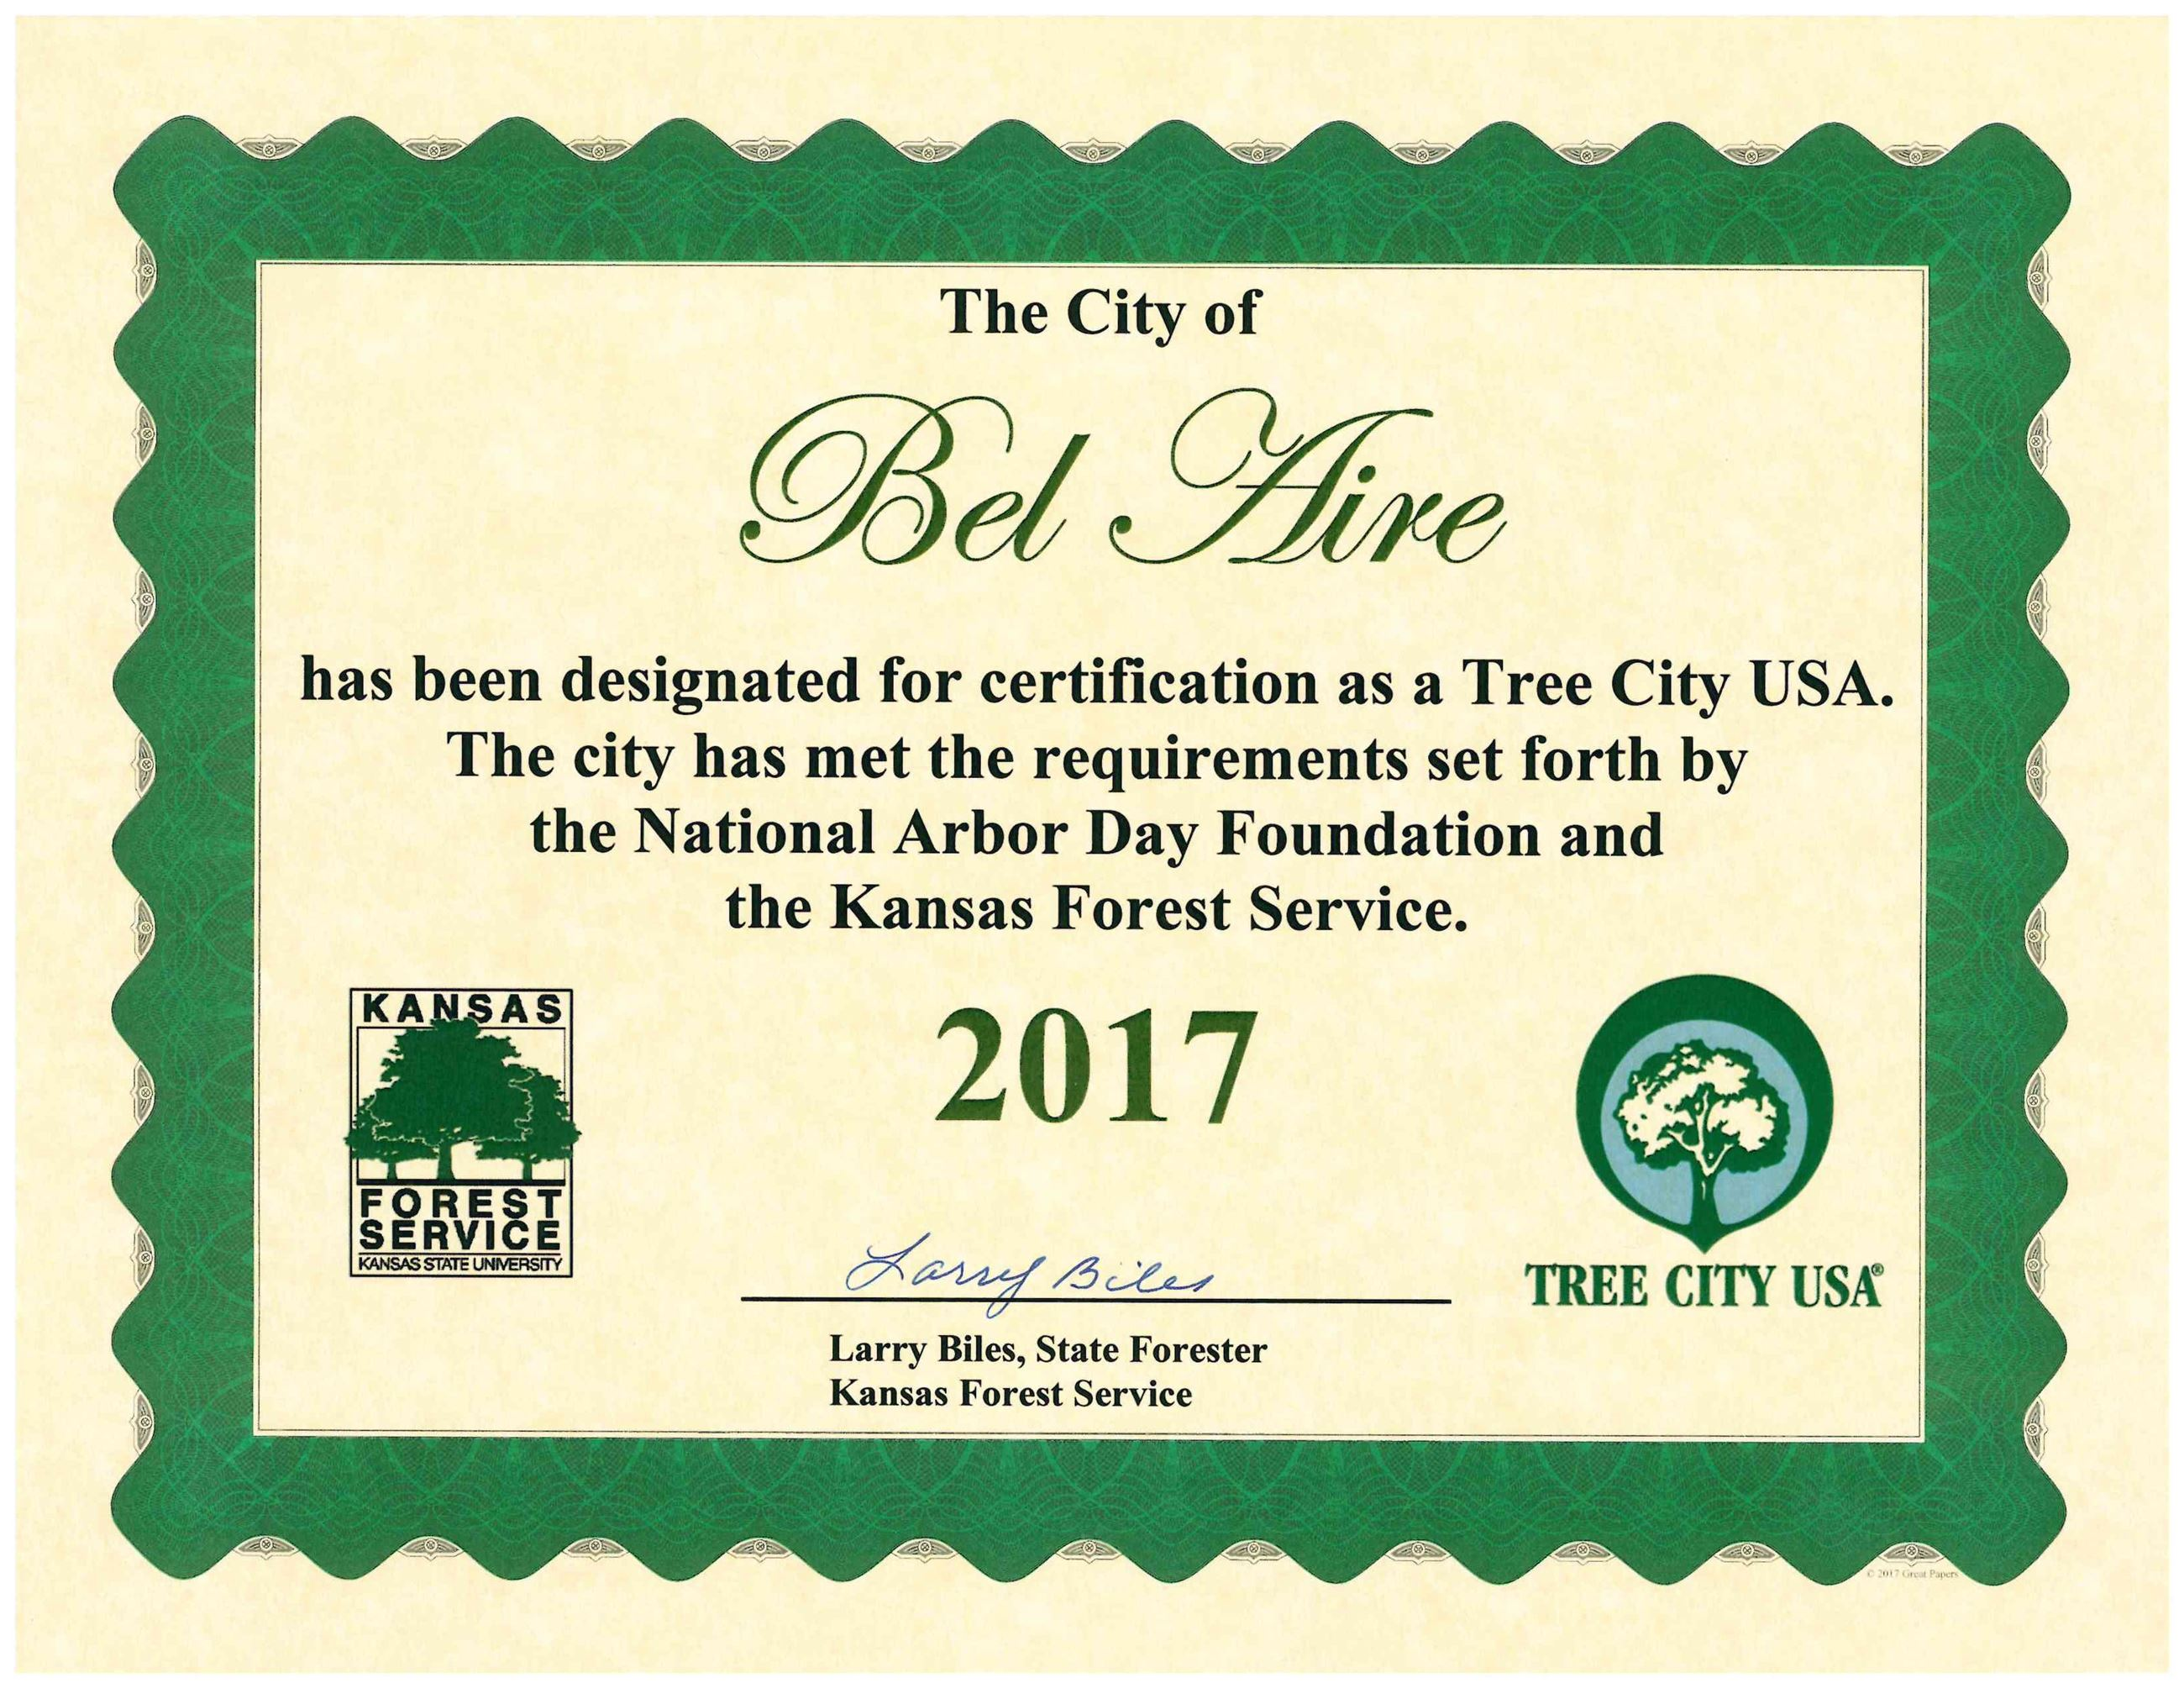 2017 Tree City USA Certification